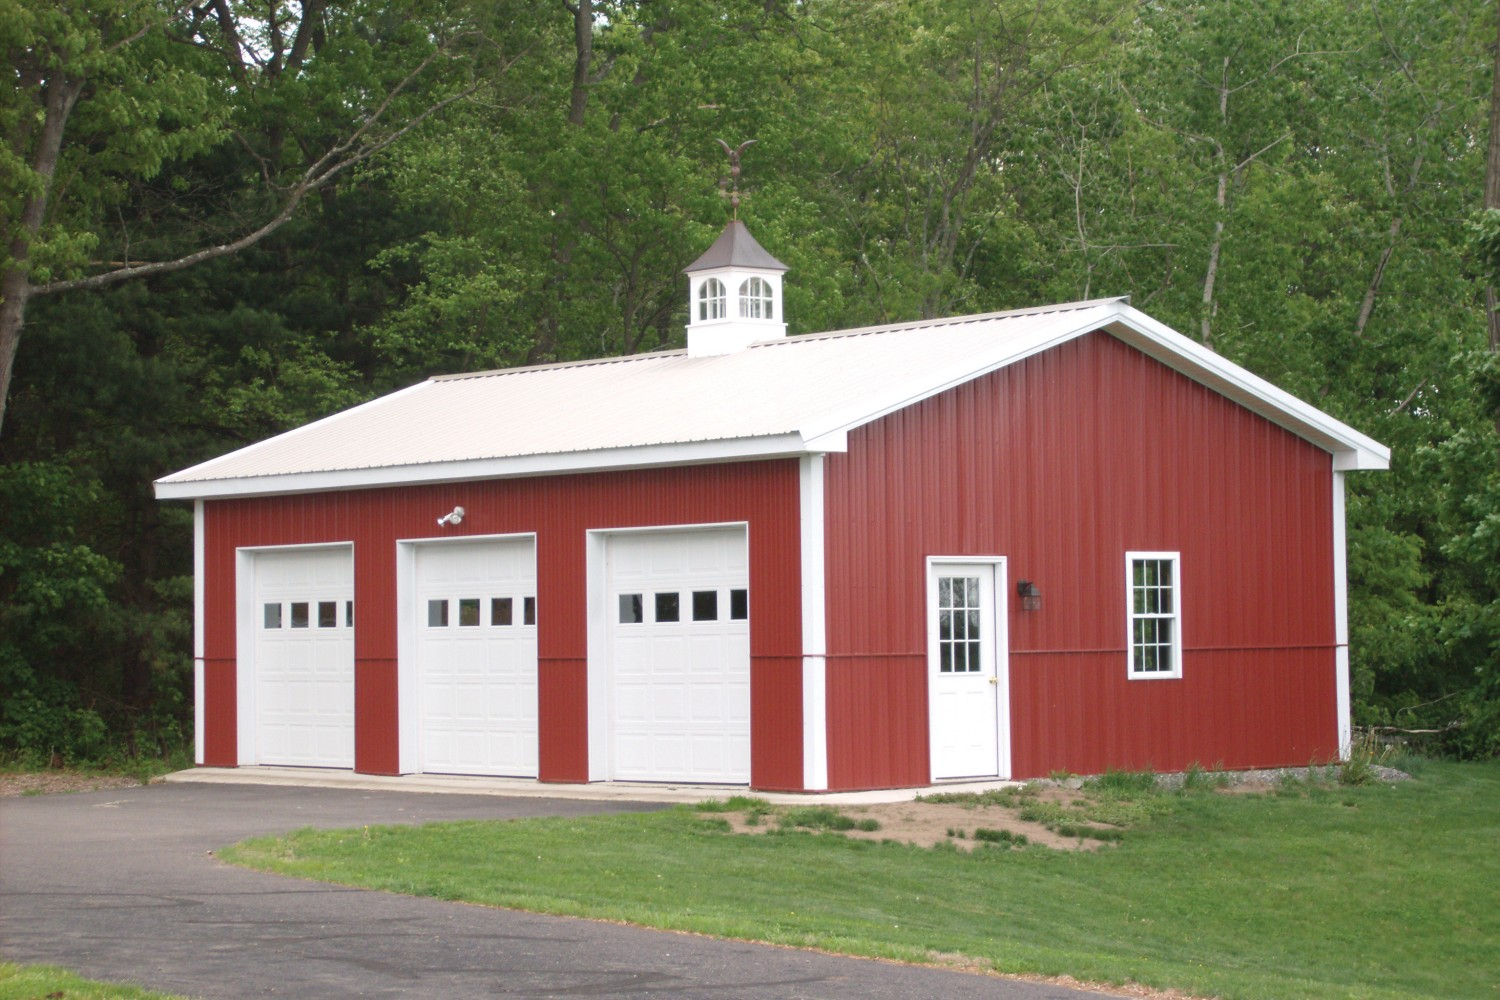 Pole barn garage kits 101 How to build a small pole barn